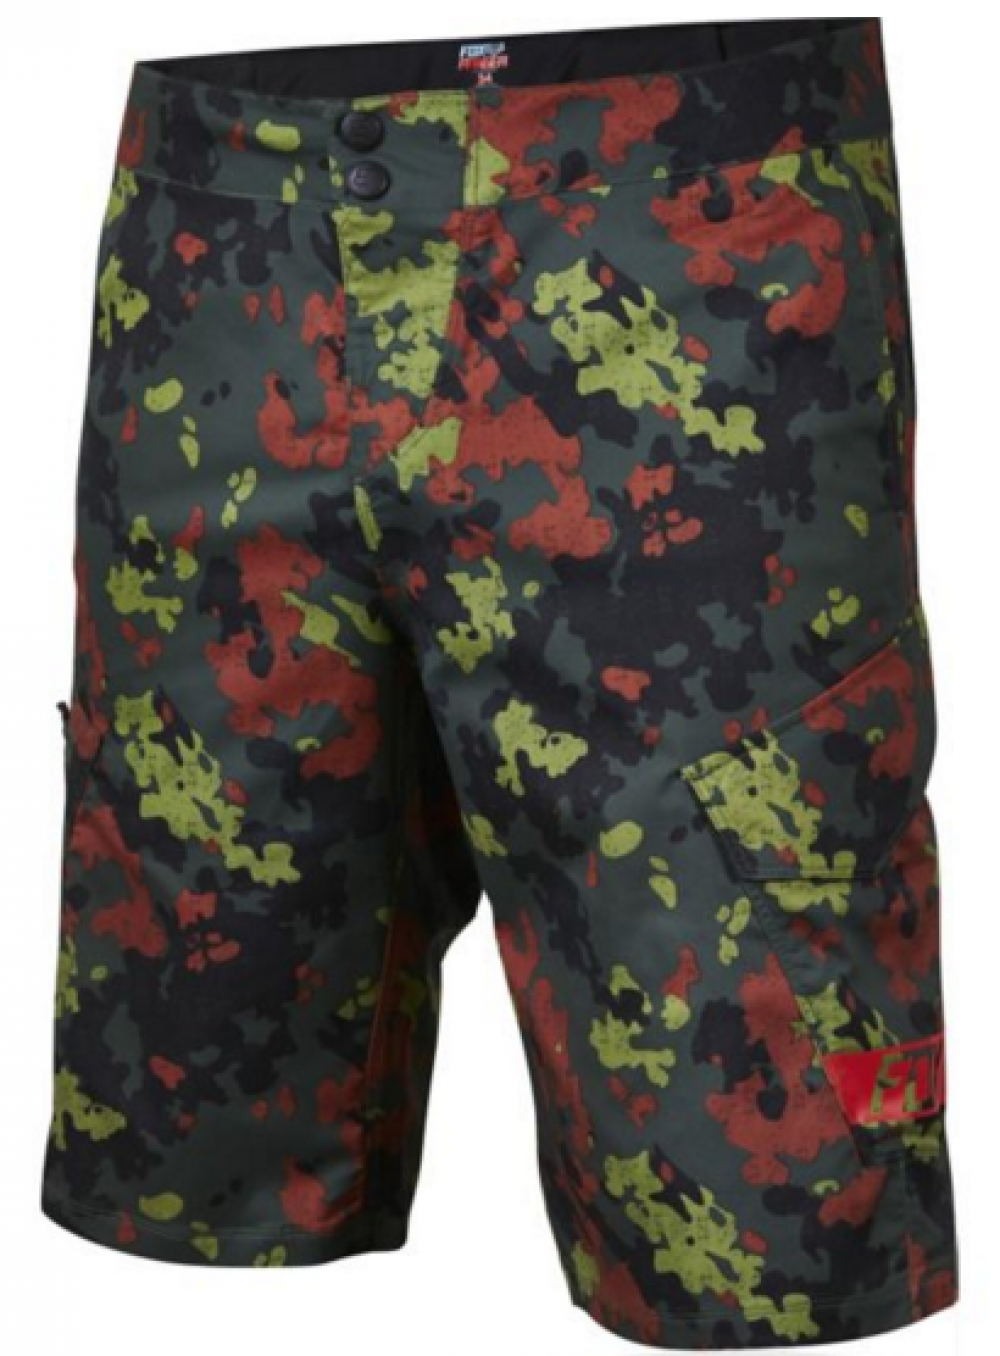 RANGER CARGO PRINT SHORT - FATIGUE CAMO